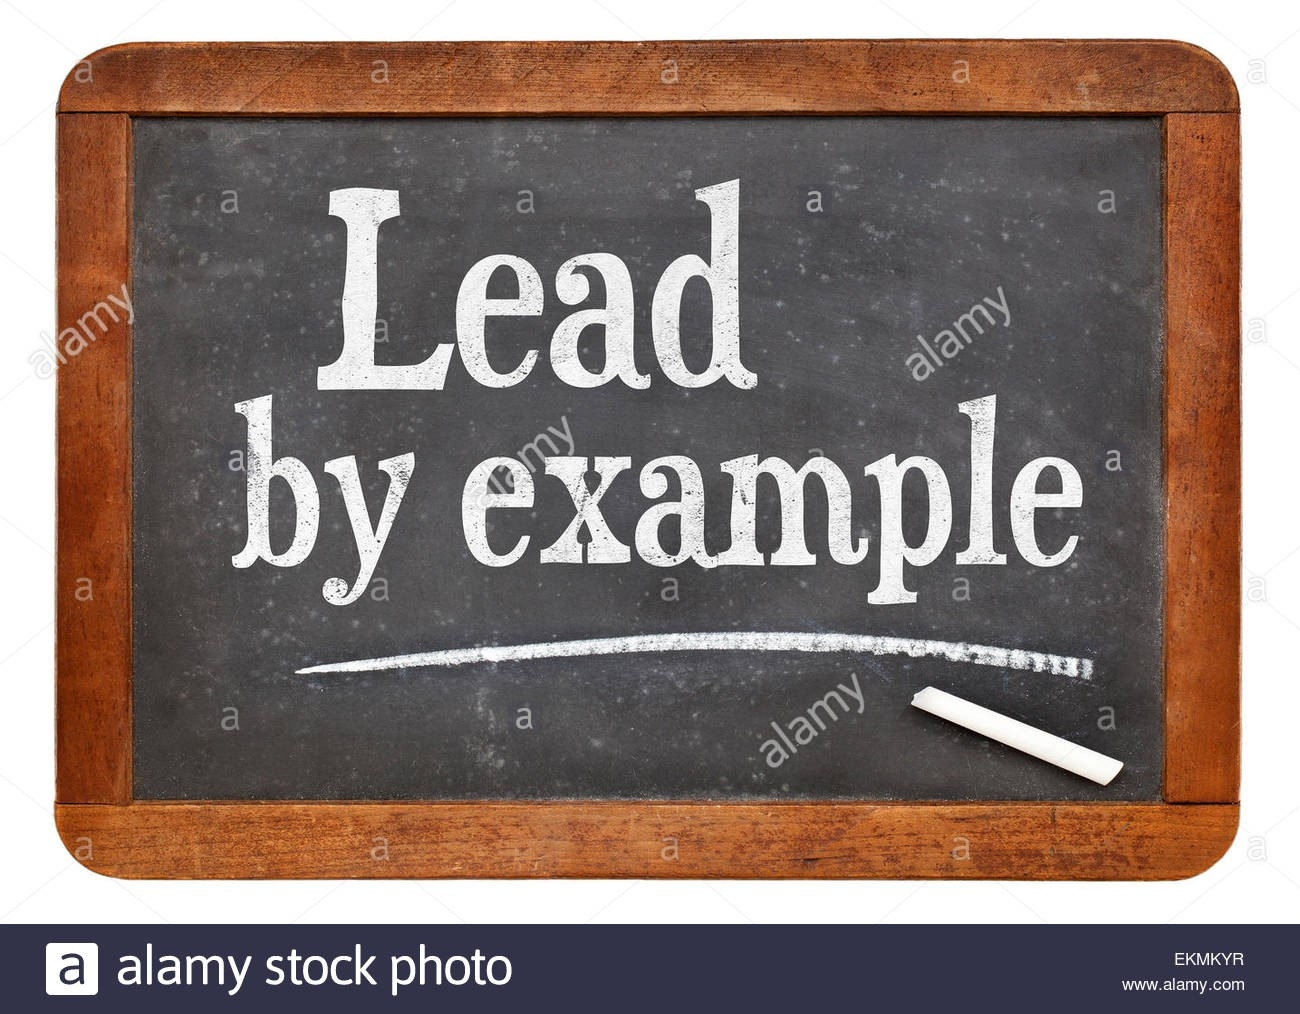 Lead By Example - Motivational Words On A Vintage Slate Blackboard pertaining to Lead By Example Images 19764